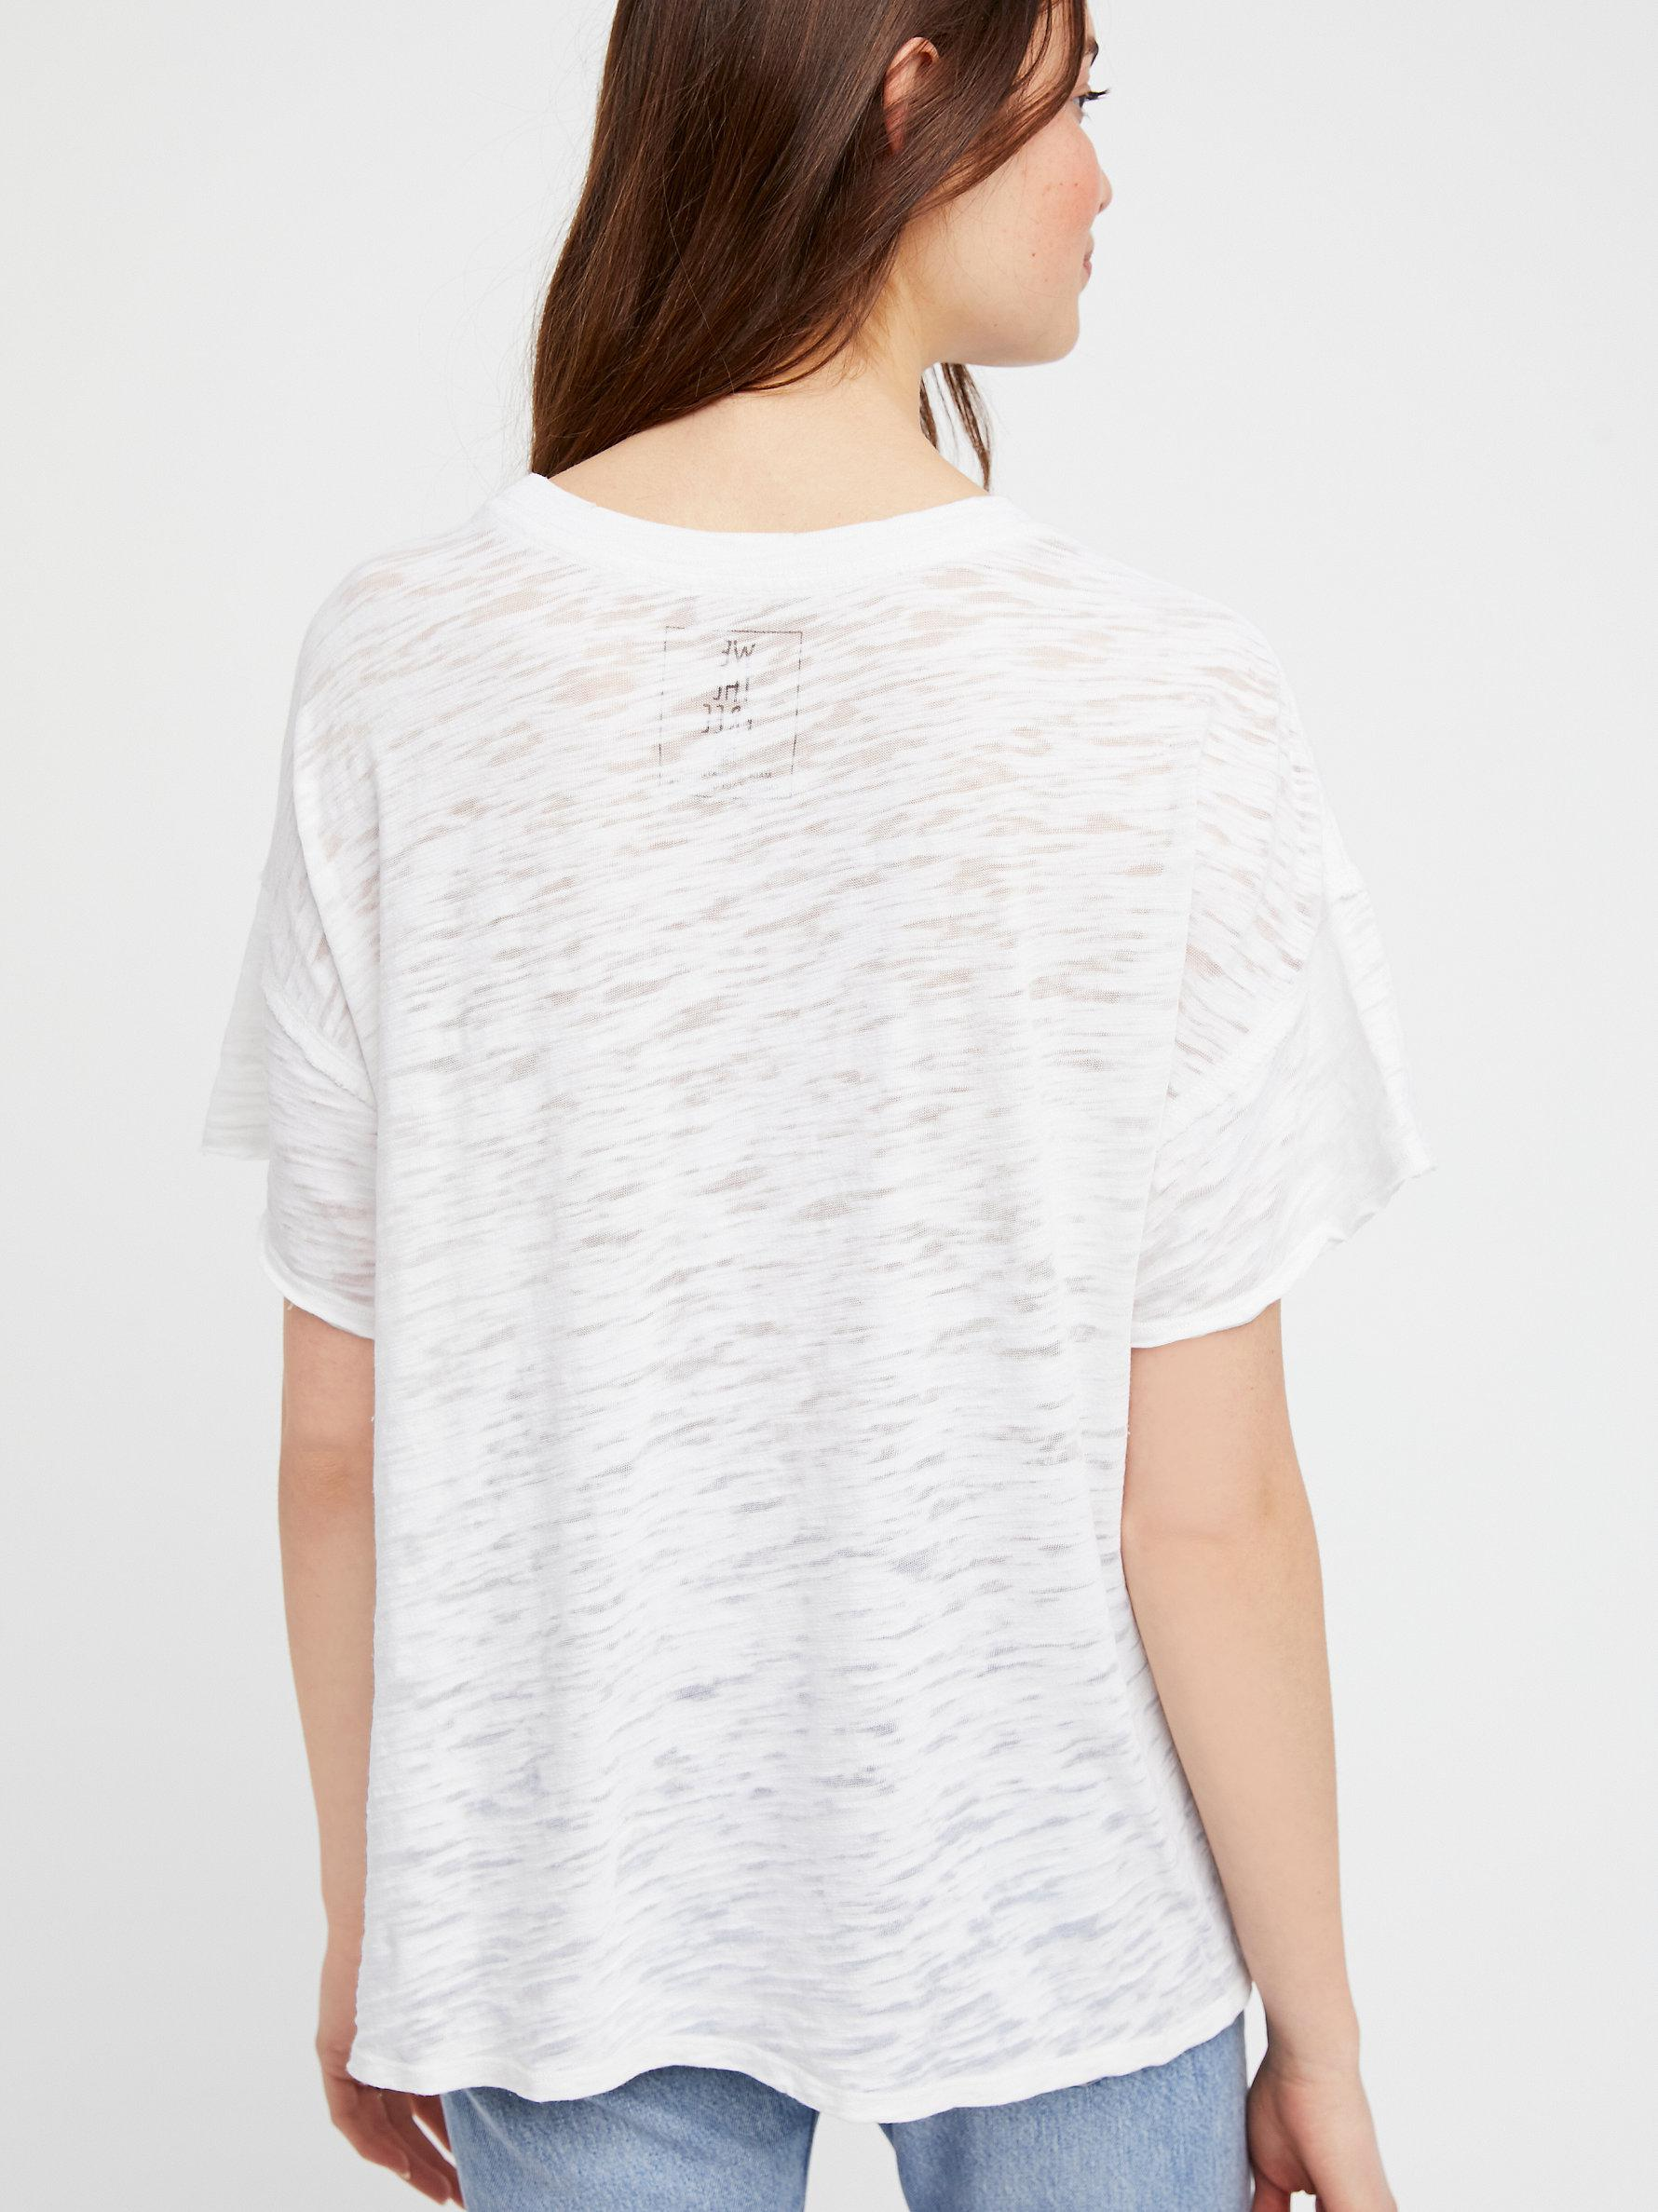 f98a1992ee32 Lyst - Free People We The Free Graphic Jordan Tee in White